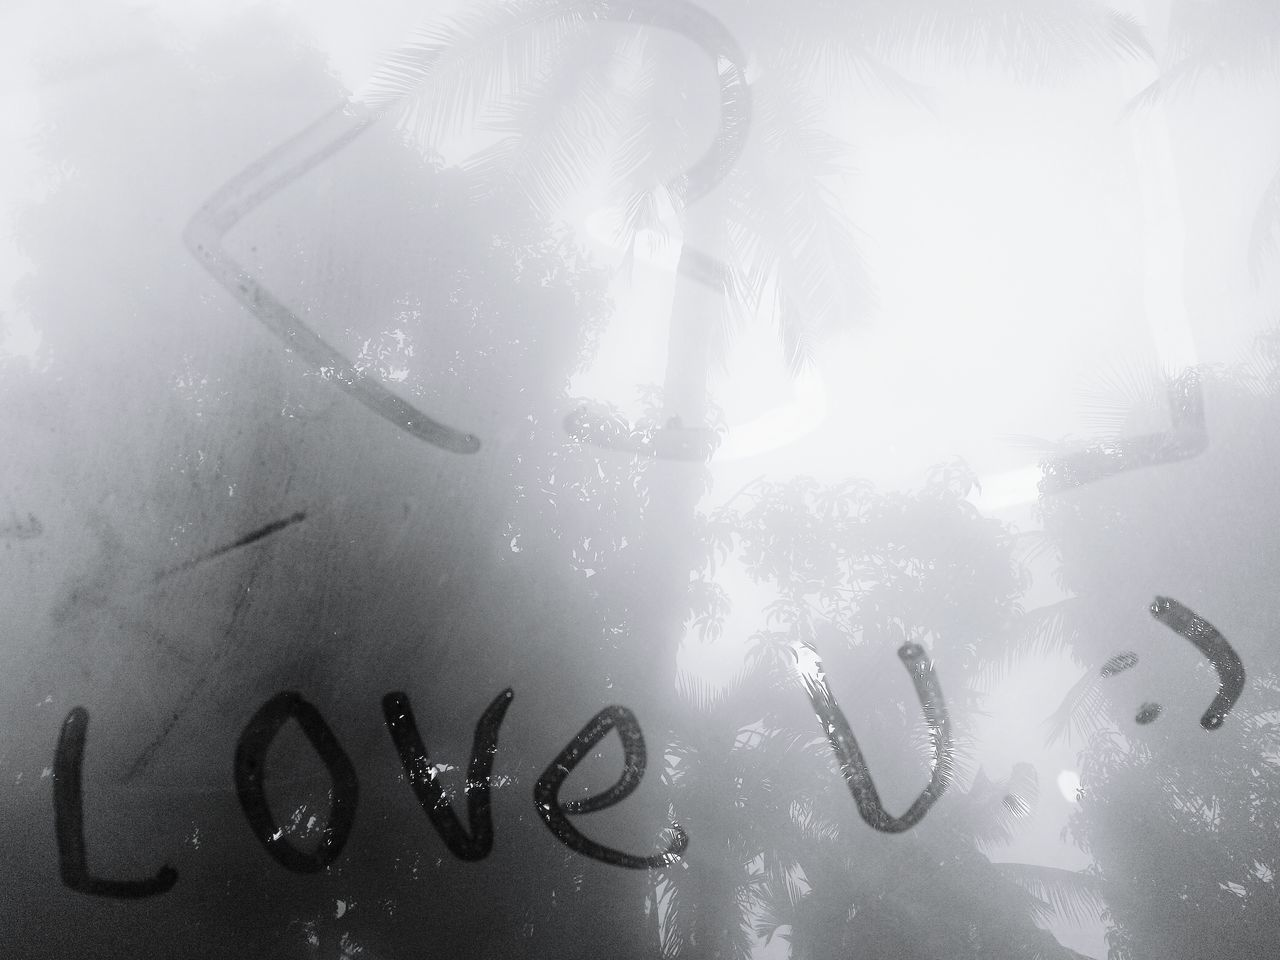 Text Communication Condensation Backgrounds No People Water Indoors  Day Close-up UnderSea Lovely Weather Lovephotography  Love To Take Photos ❤ Love Is In The Air Love♥ Love <3 Love♡ Exploring New Ground Photographing